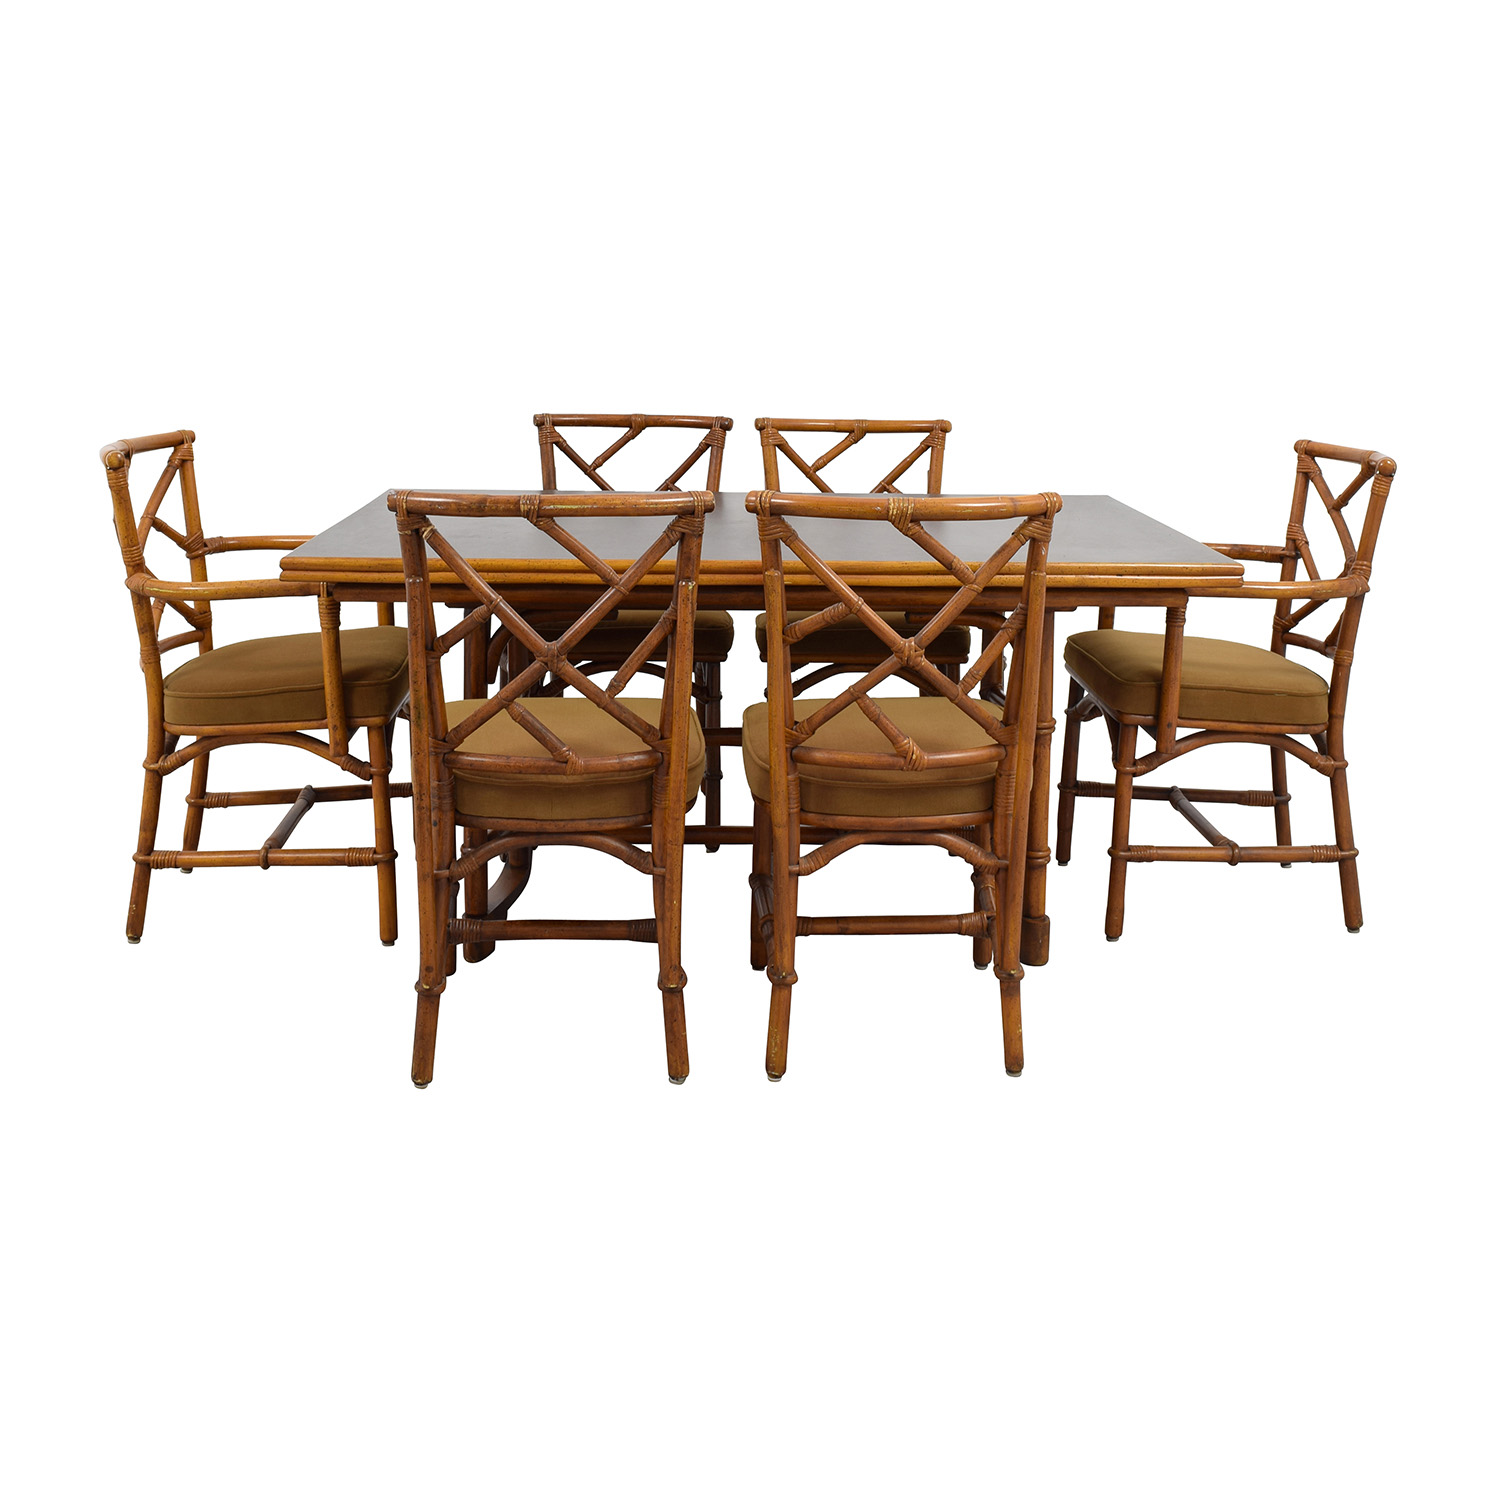 Bamboo Dining Set With Six Chairs / Tables